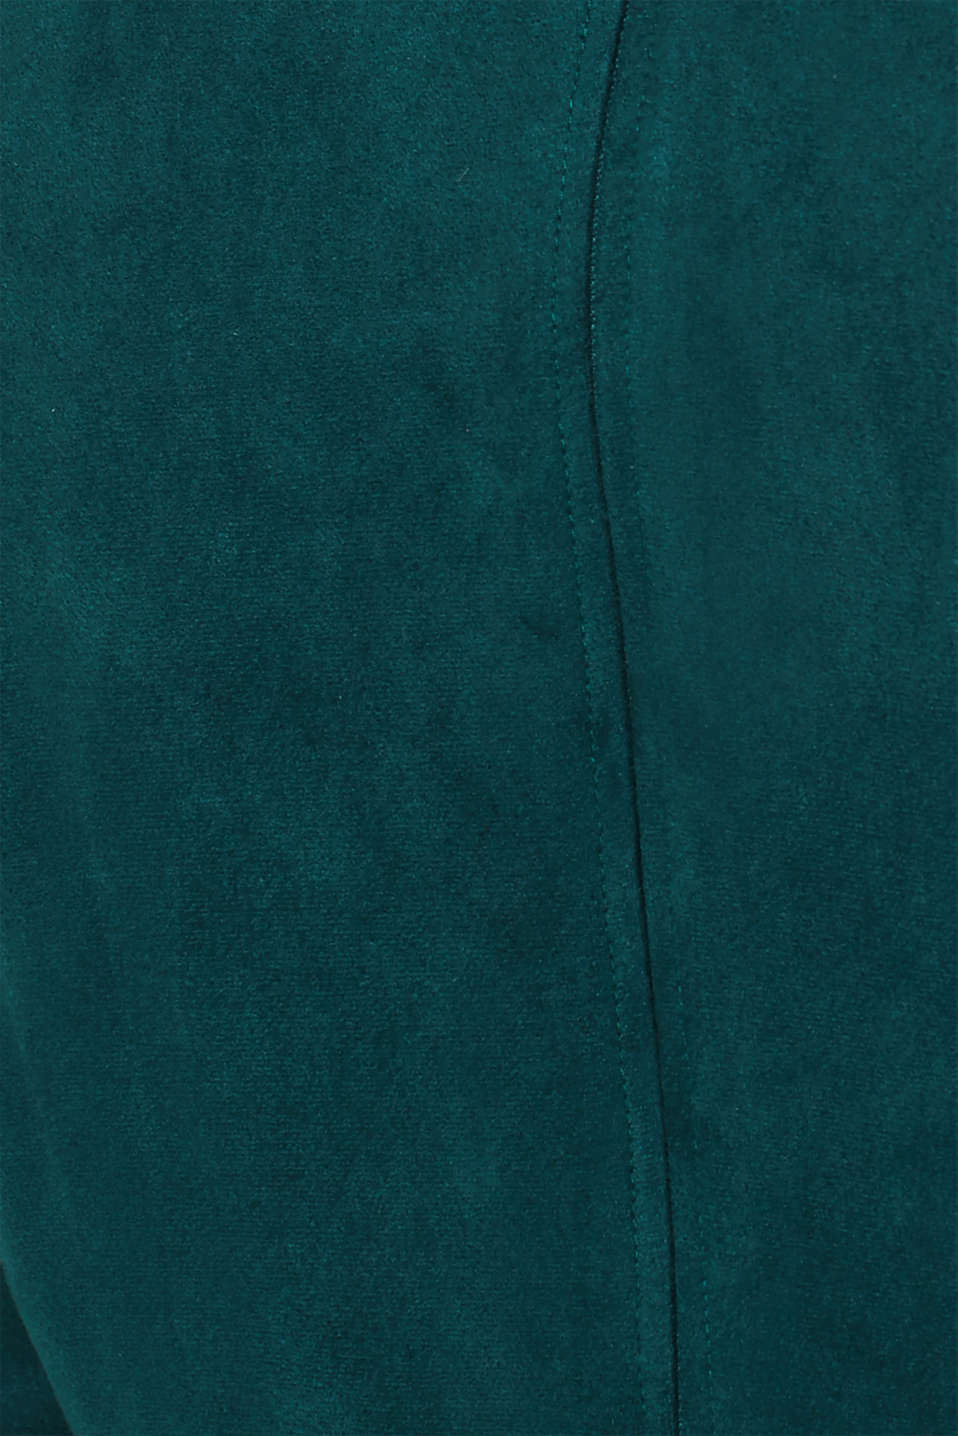 Stretch faux leather dress, DARK TEAL GREEN, detail image number 4